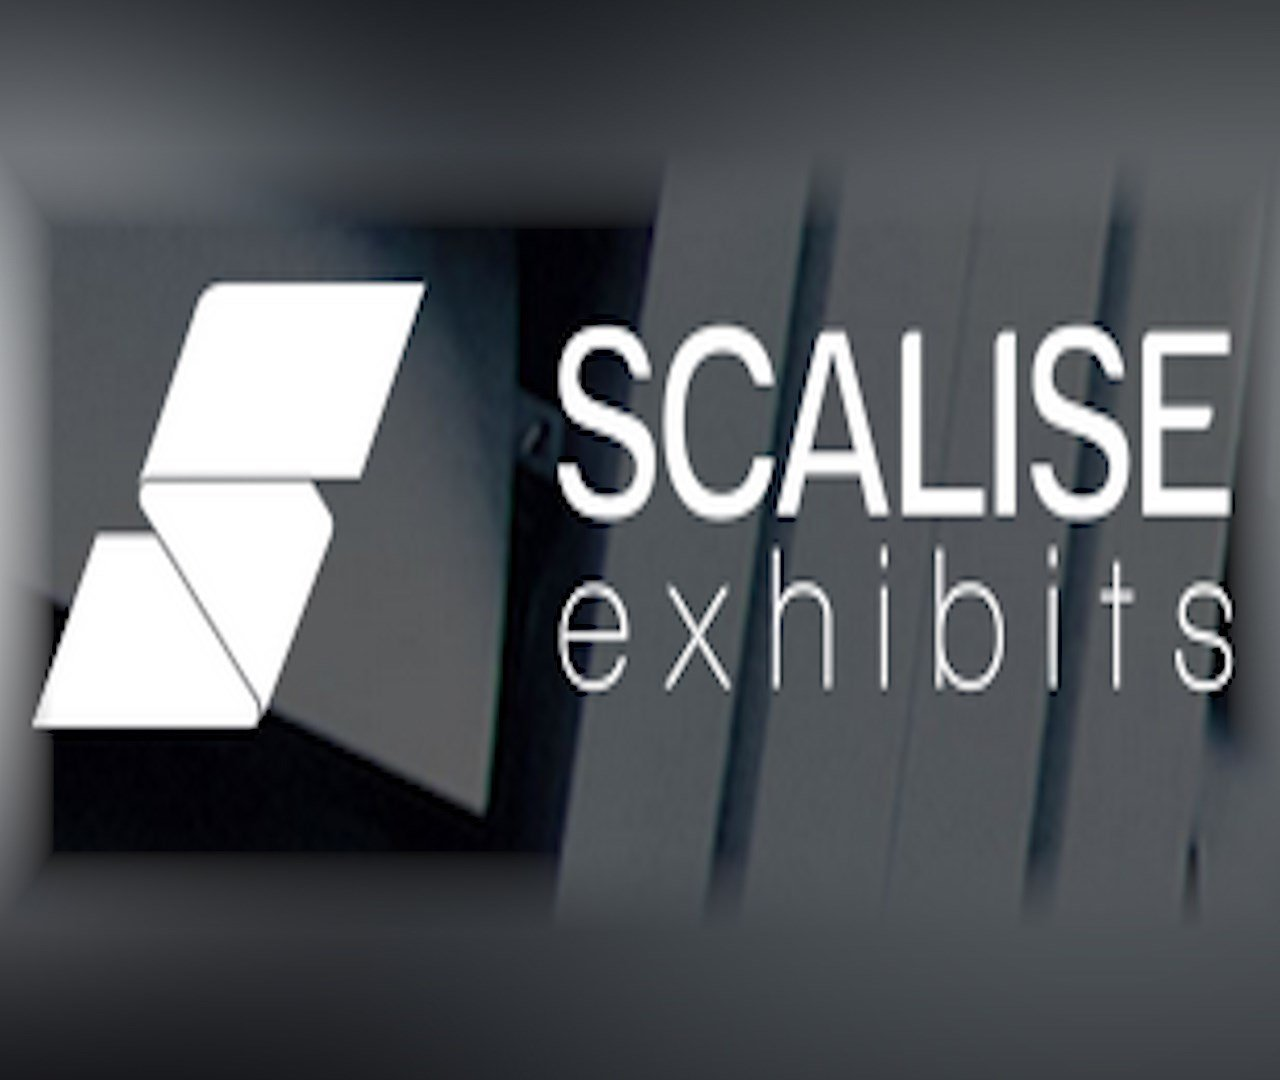 Scalise Exhibits